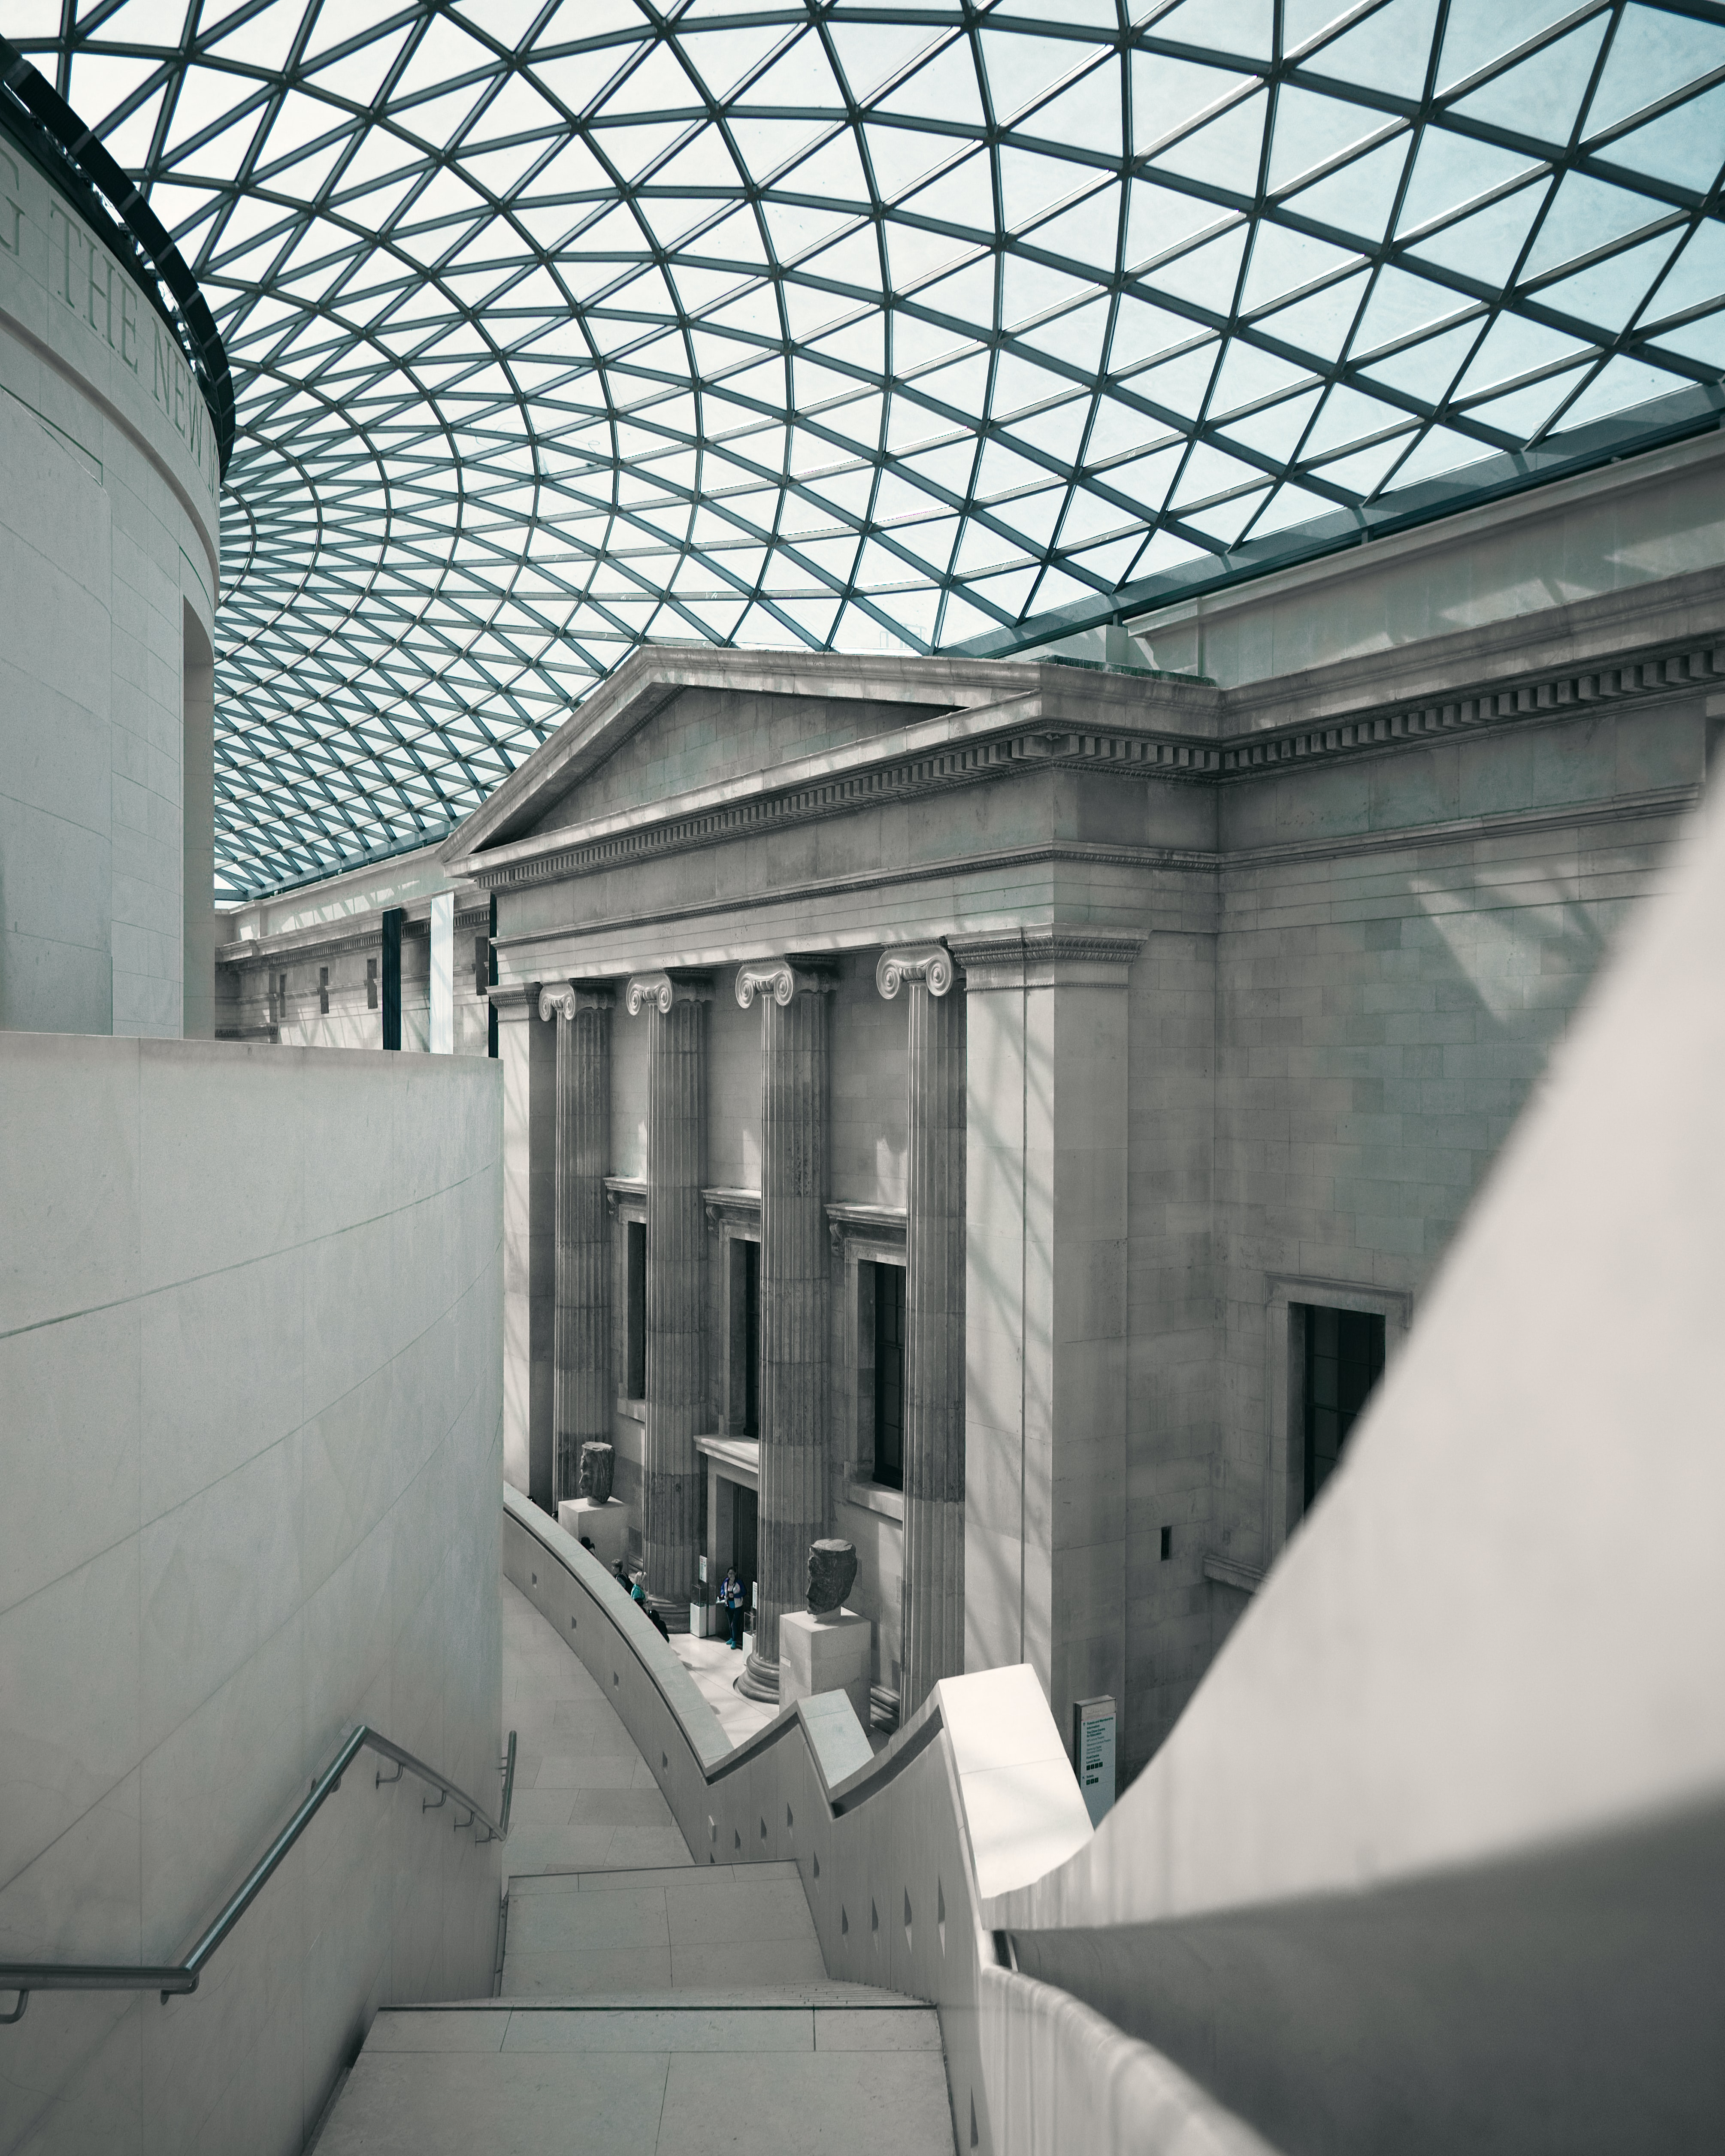 photo of staircase and glass roof